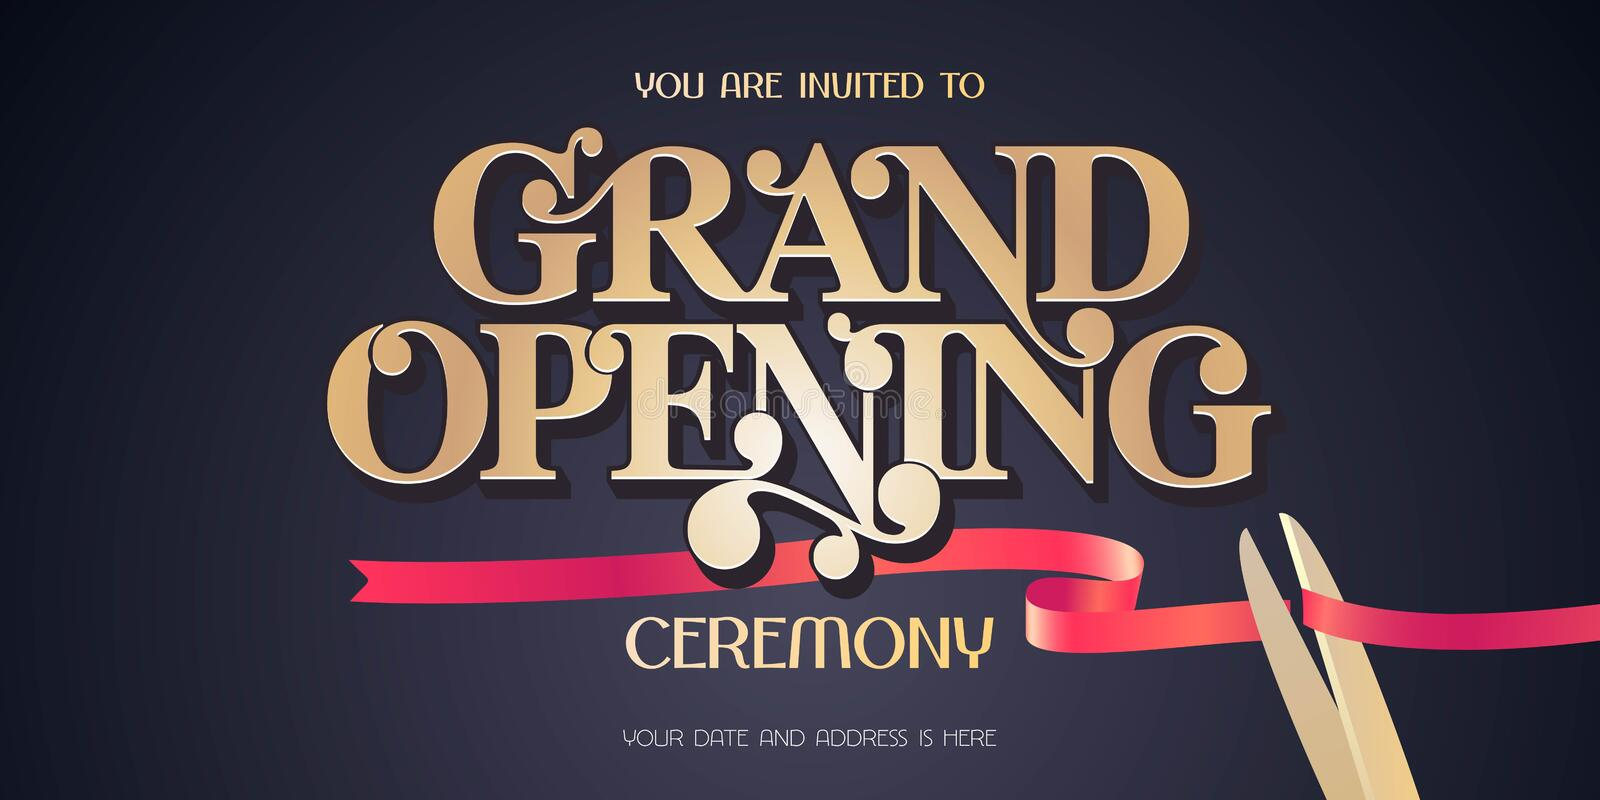 Red ribbon and scissors design element for invitation card to grand opening ceremony. Store opening soon invite royalty free illustration